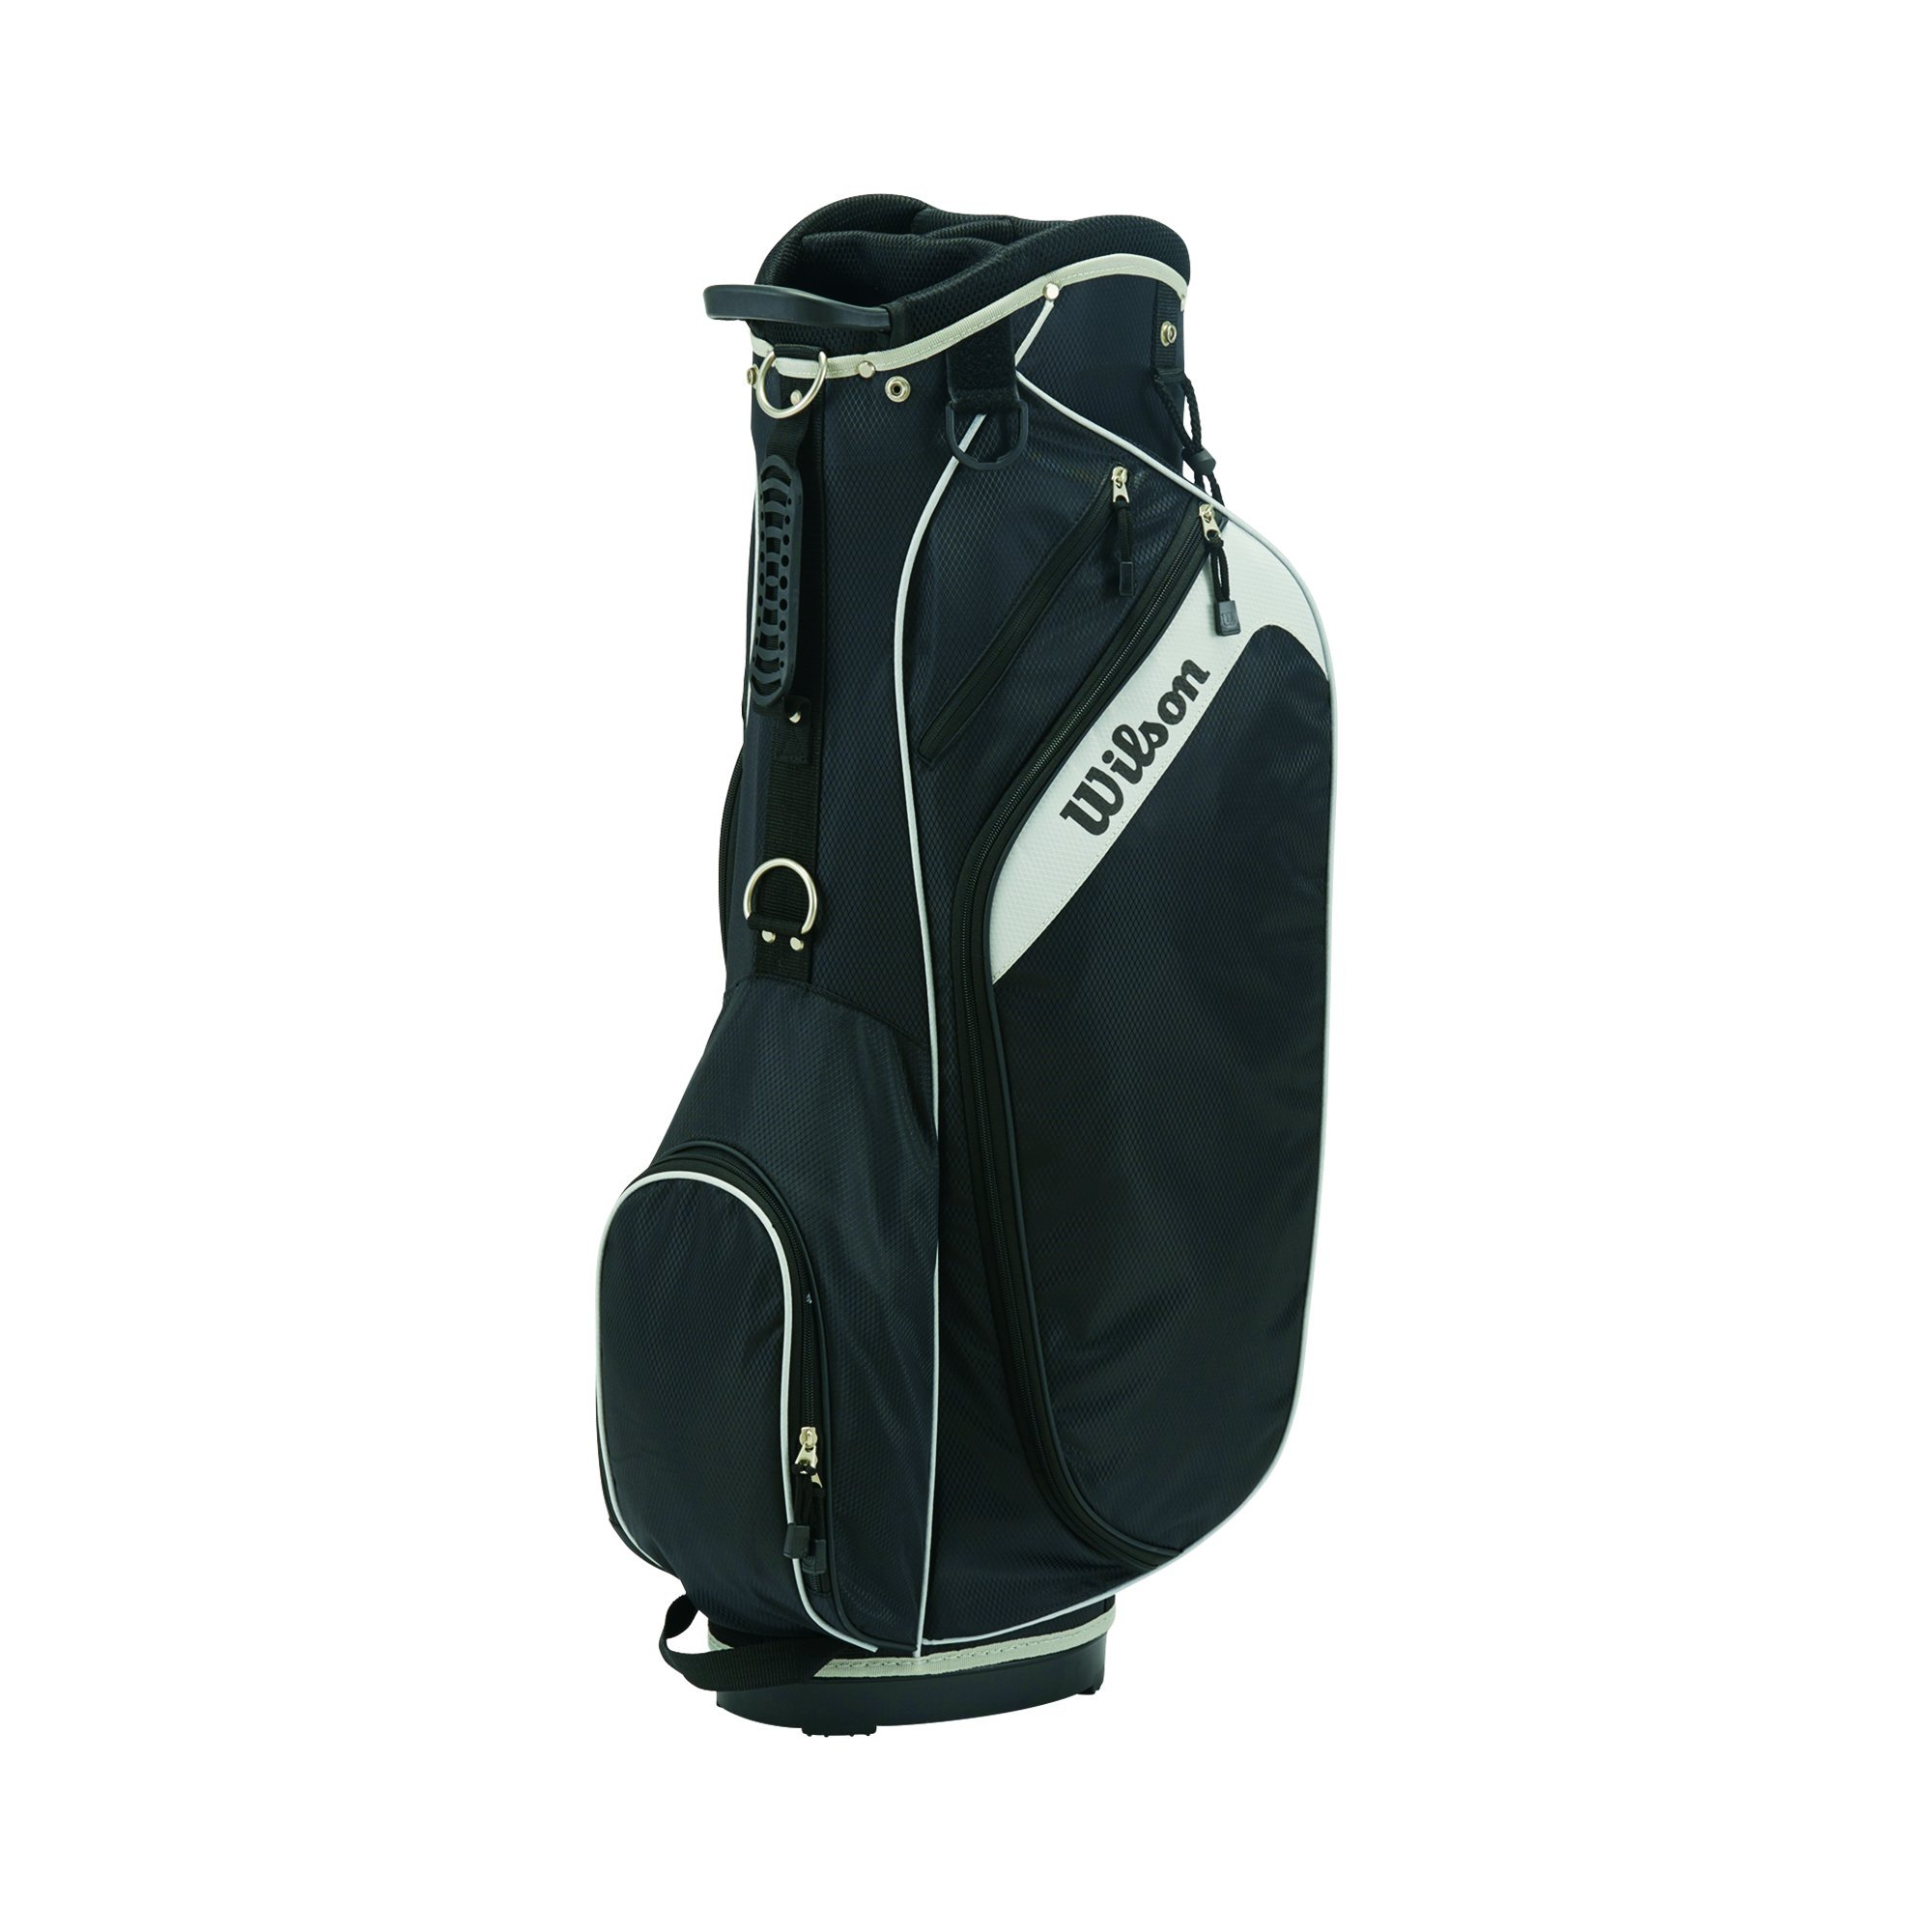 Wilson Golf Unisex Wilson Profile Bag Wilson Profile Golf Cart Bag, Black